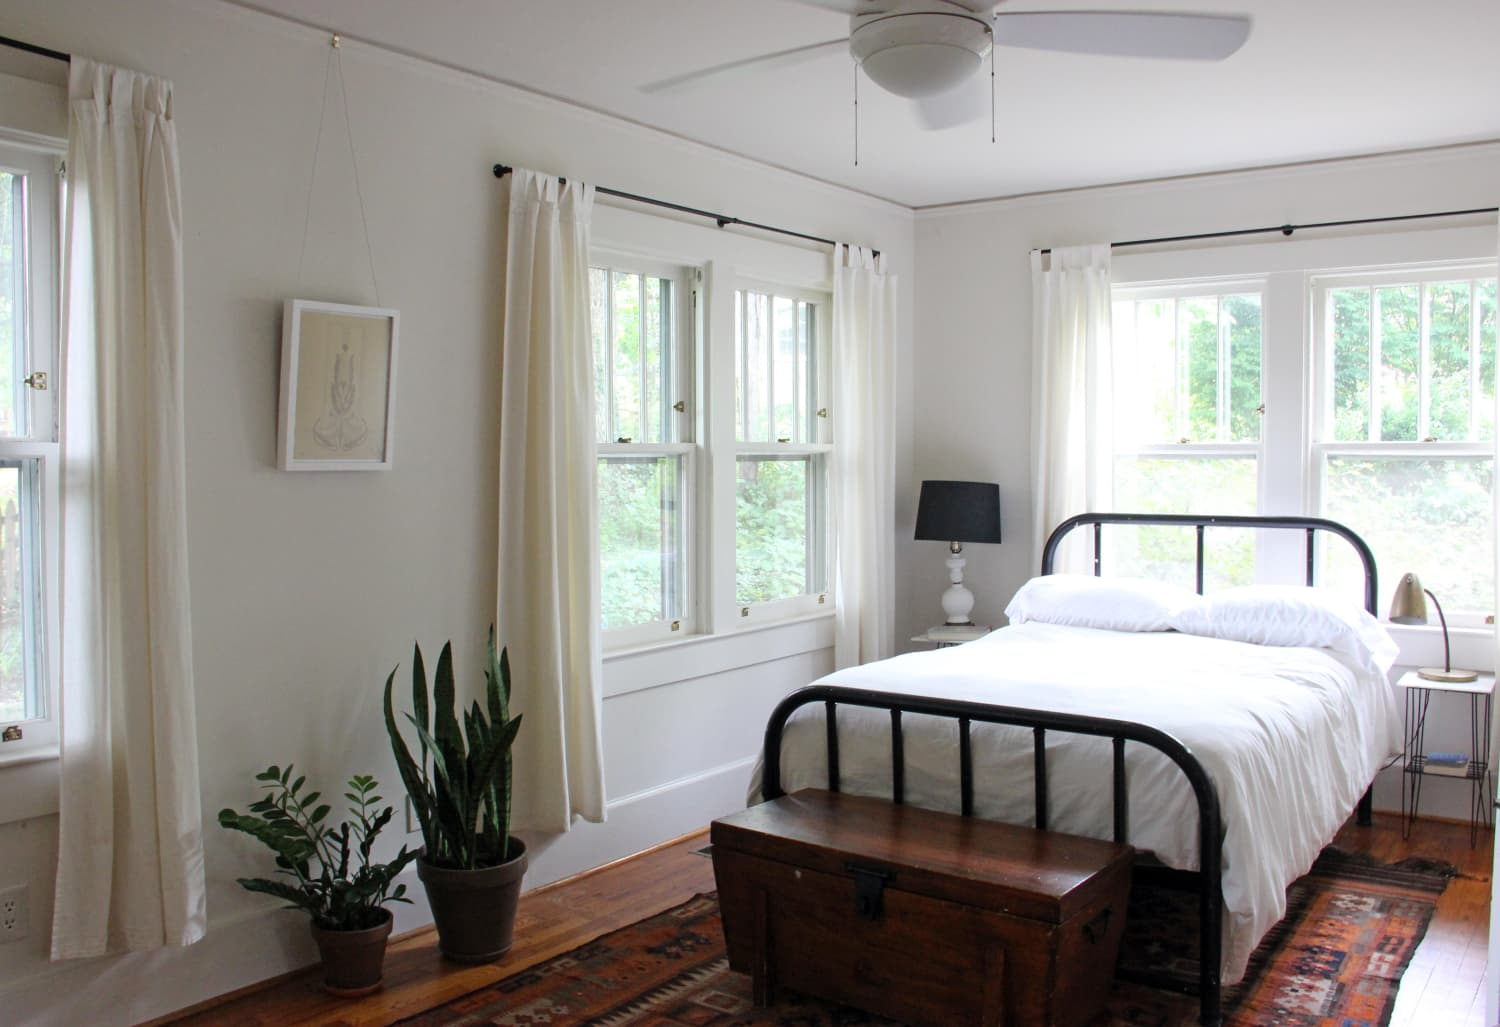 Renter-Friendly Window Treatments That Don't Damage Walls